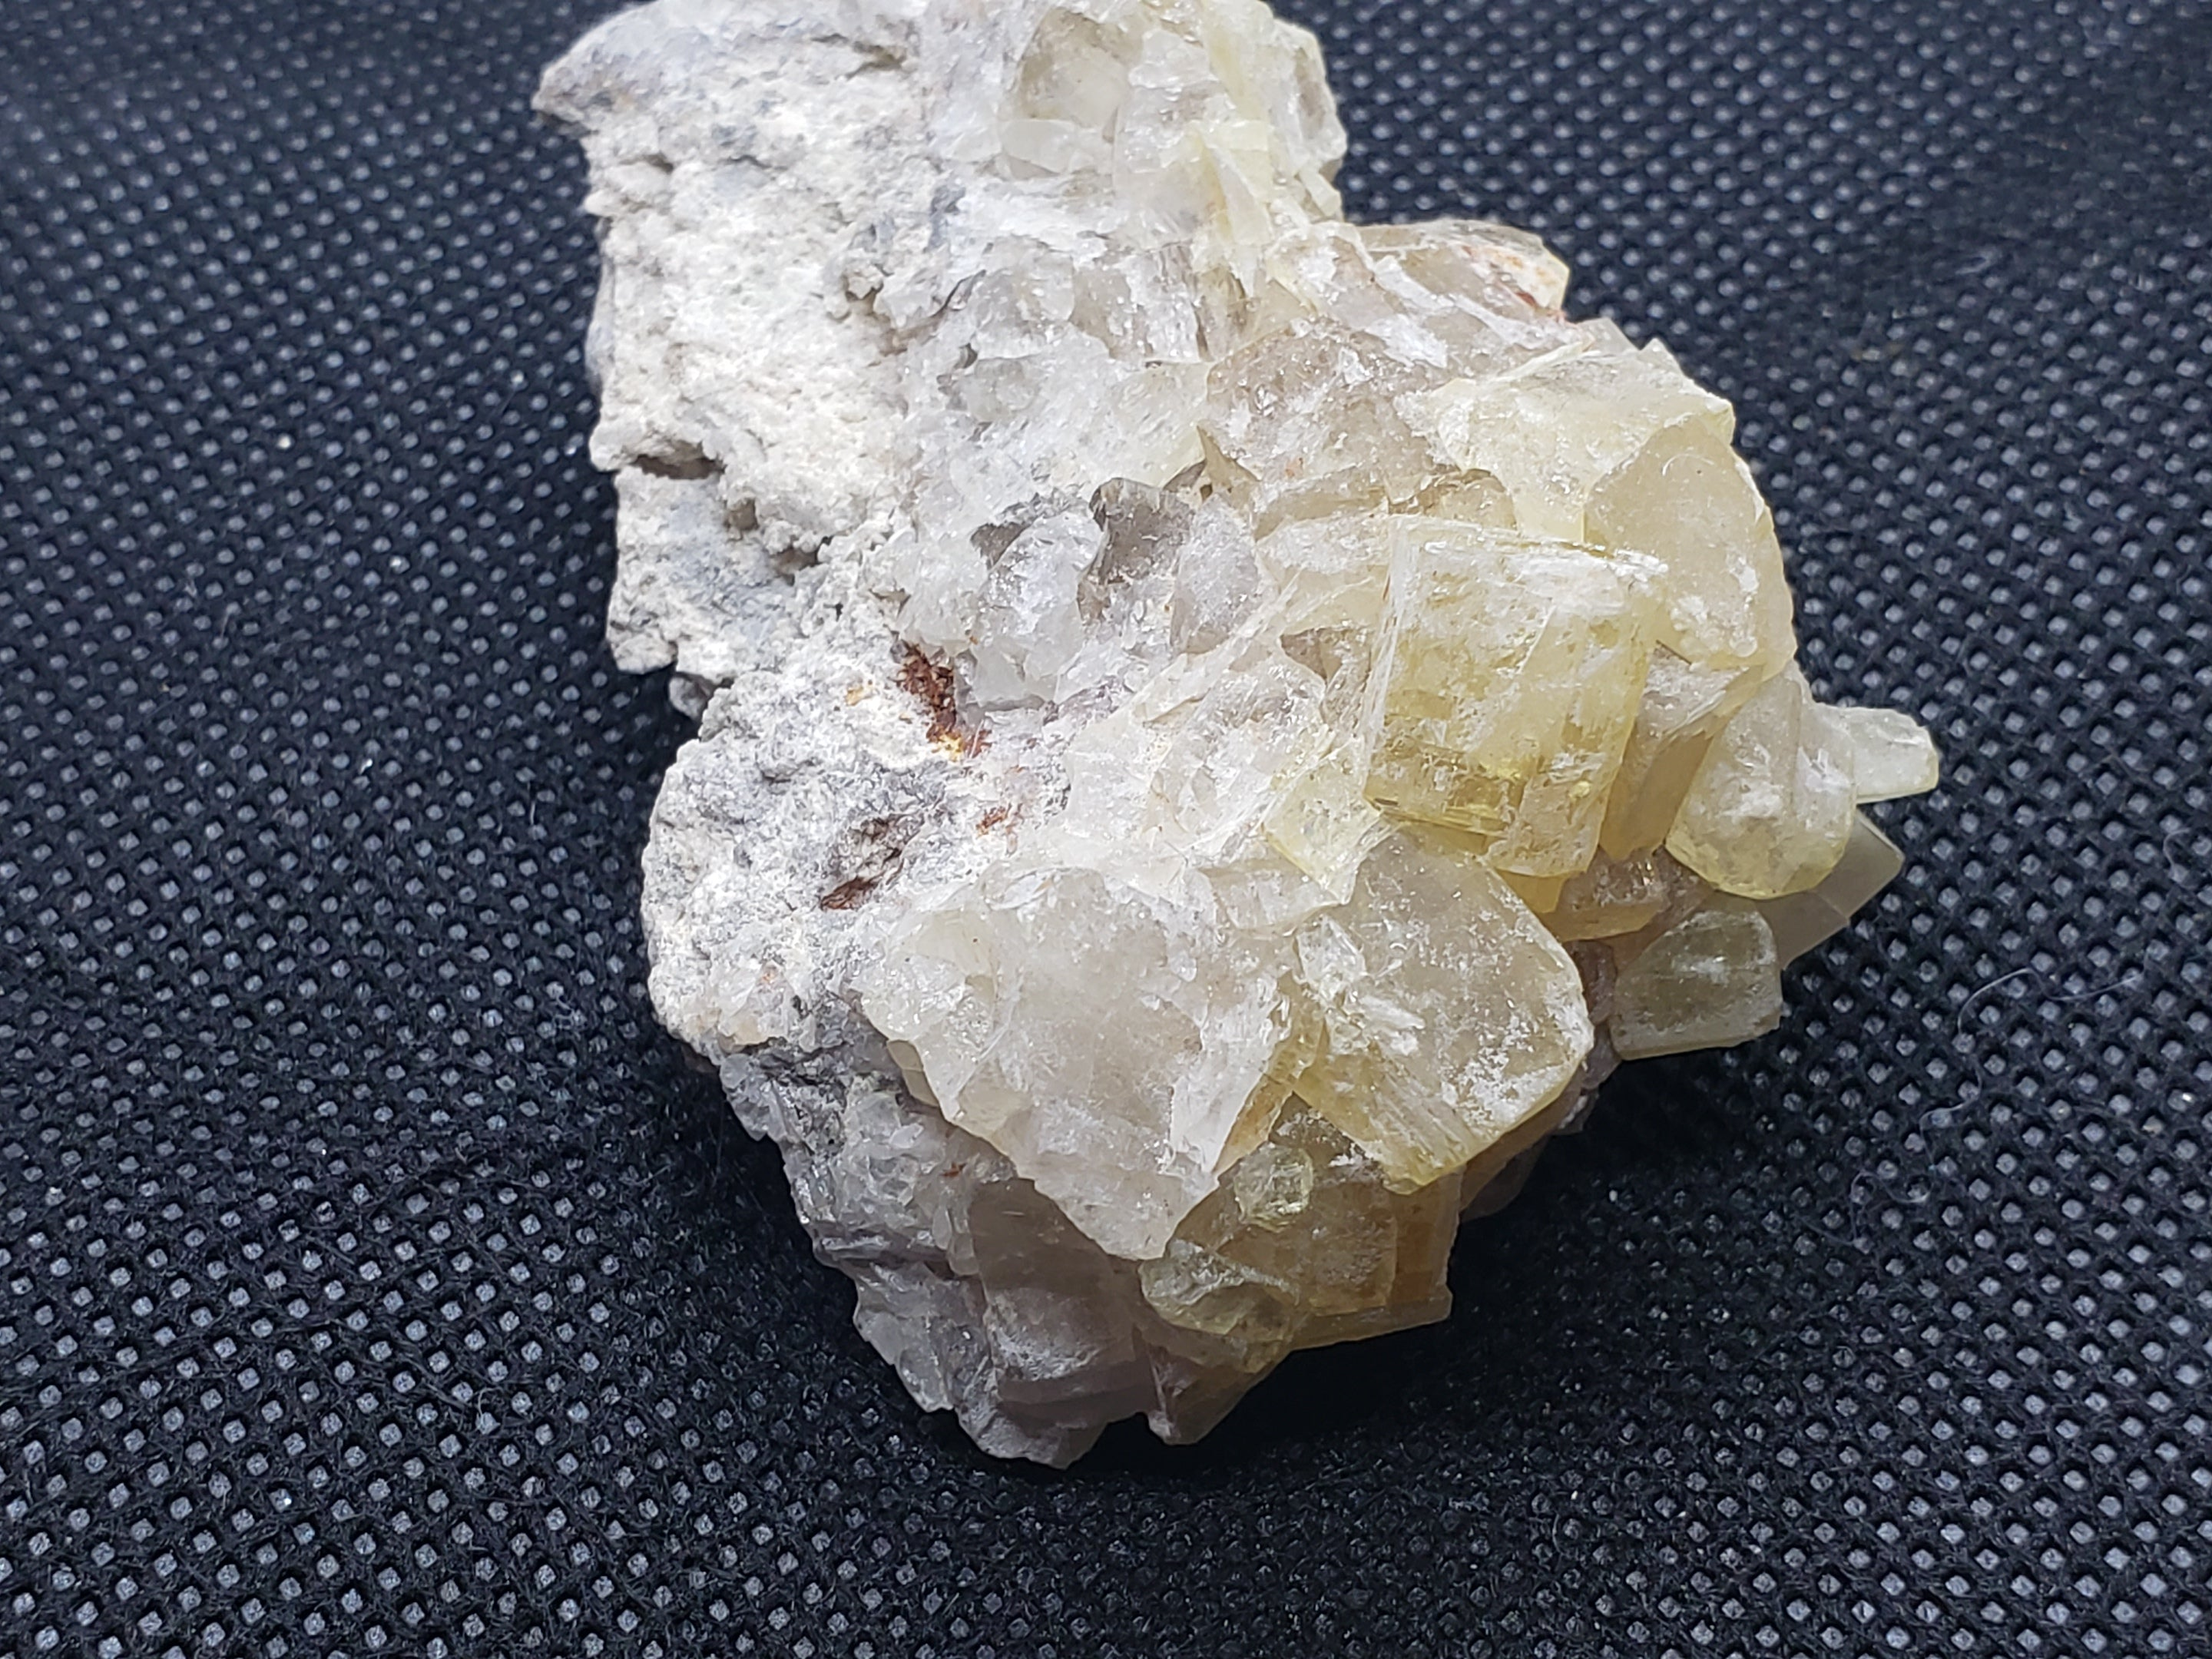 Barite from Cougar #2